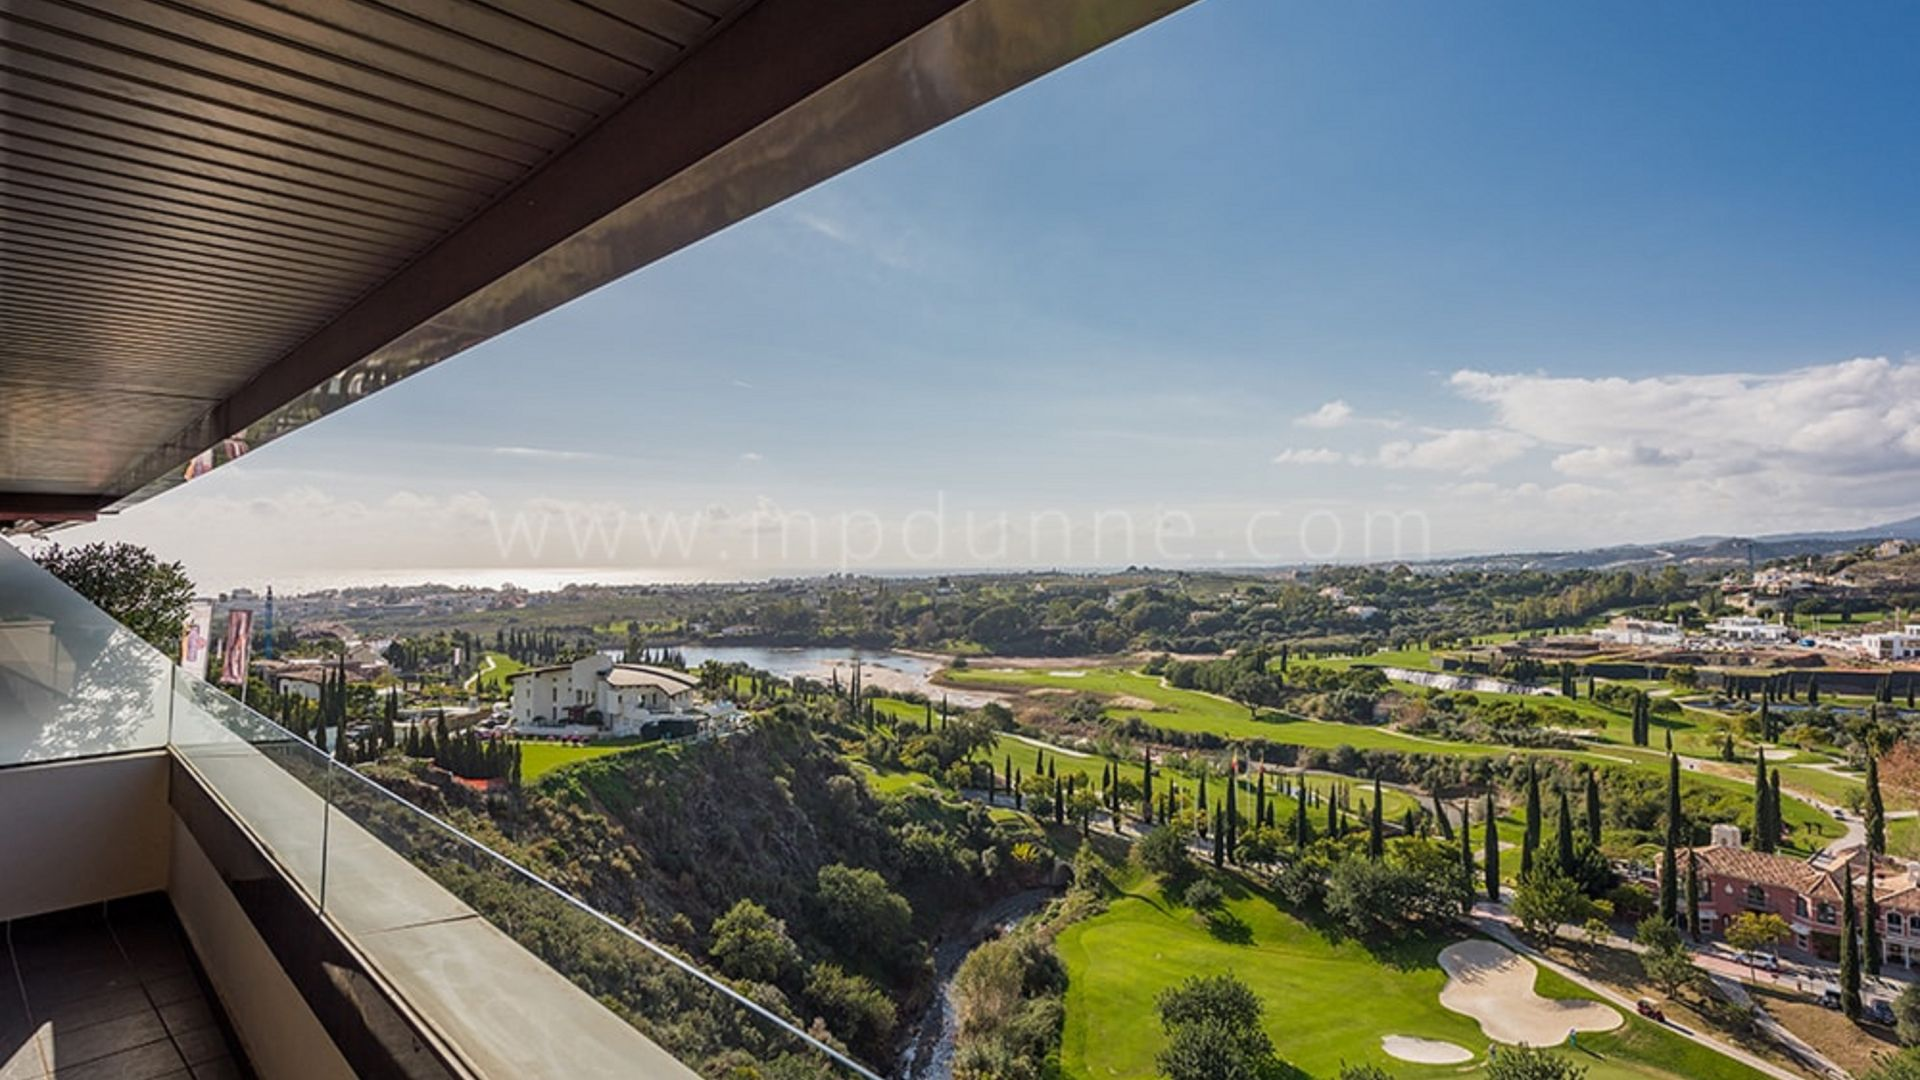 Hoyo 19. Residencial Hoyo 19, Los Flamingos golf, Contemporary apartments and penthouses - Gallery